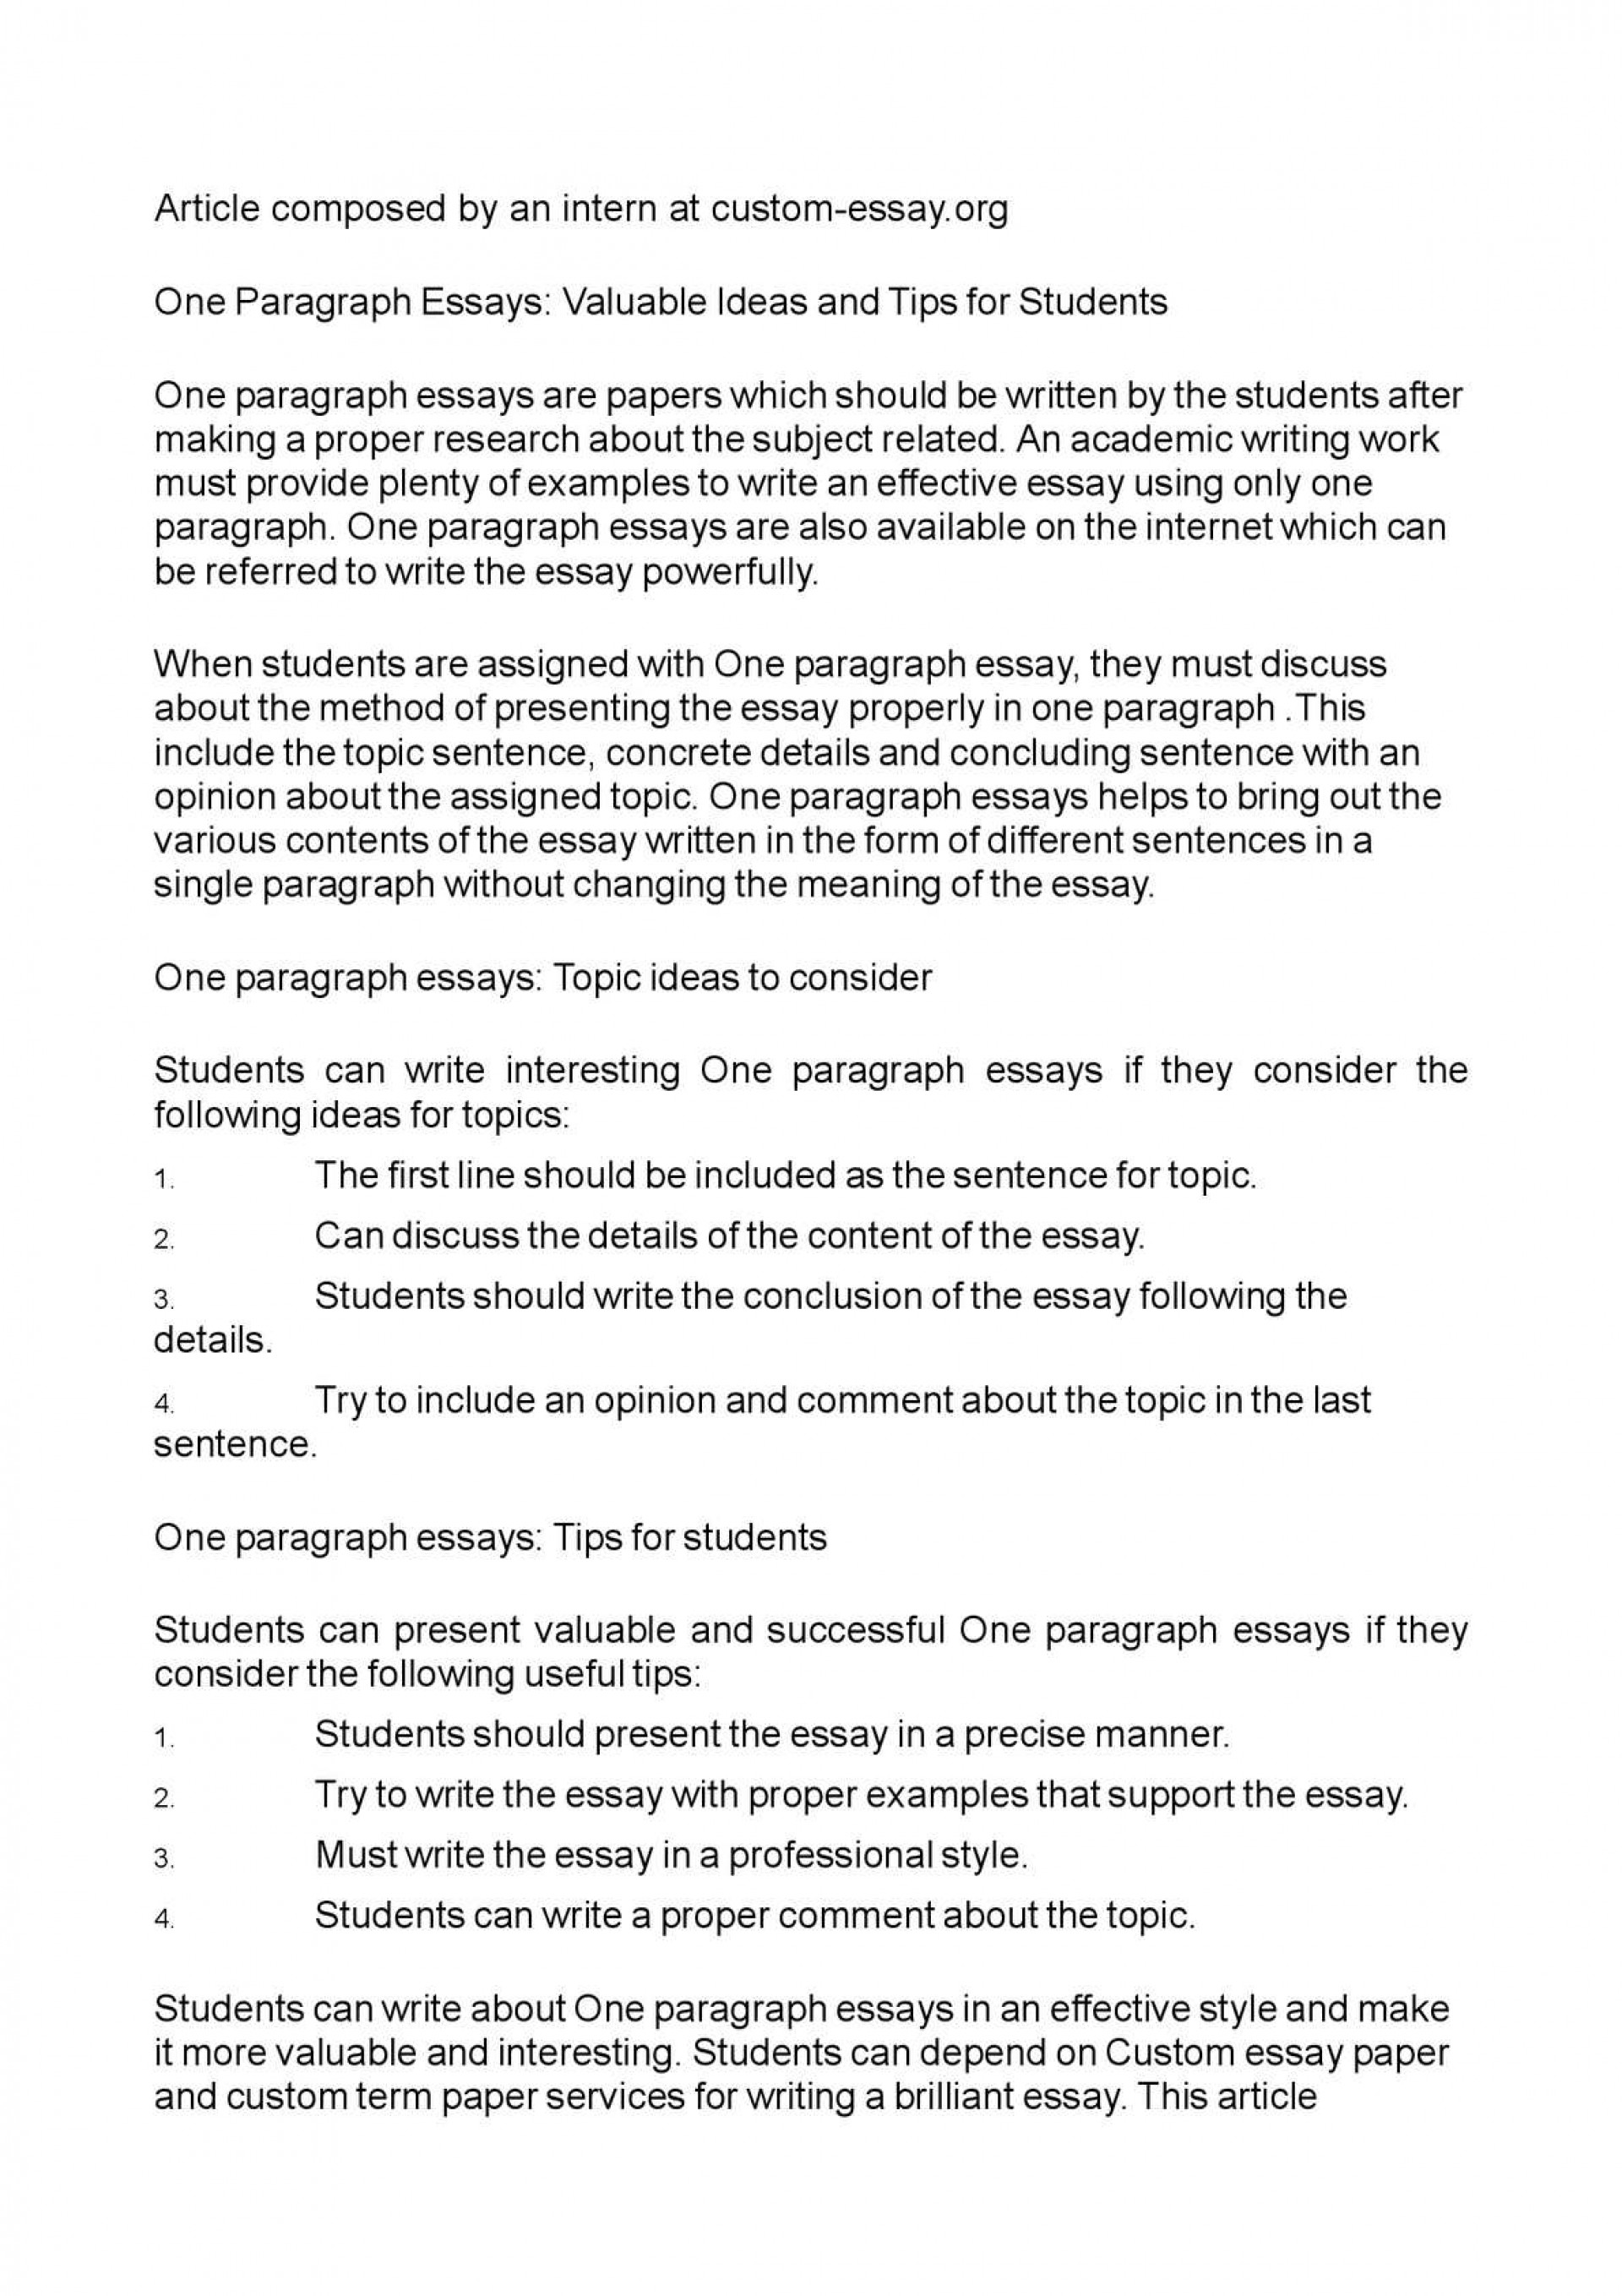 007 One Paragraph Essay P1 Awesome About Dwarfism Topics 1920